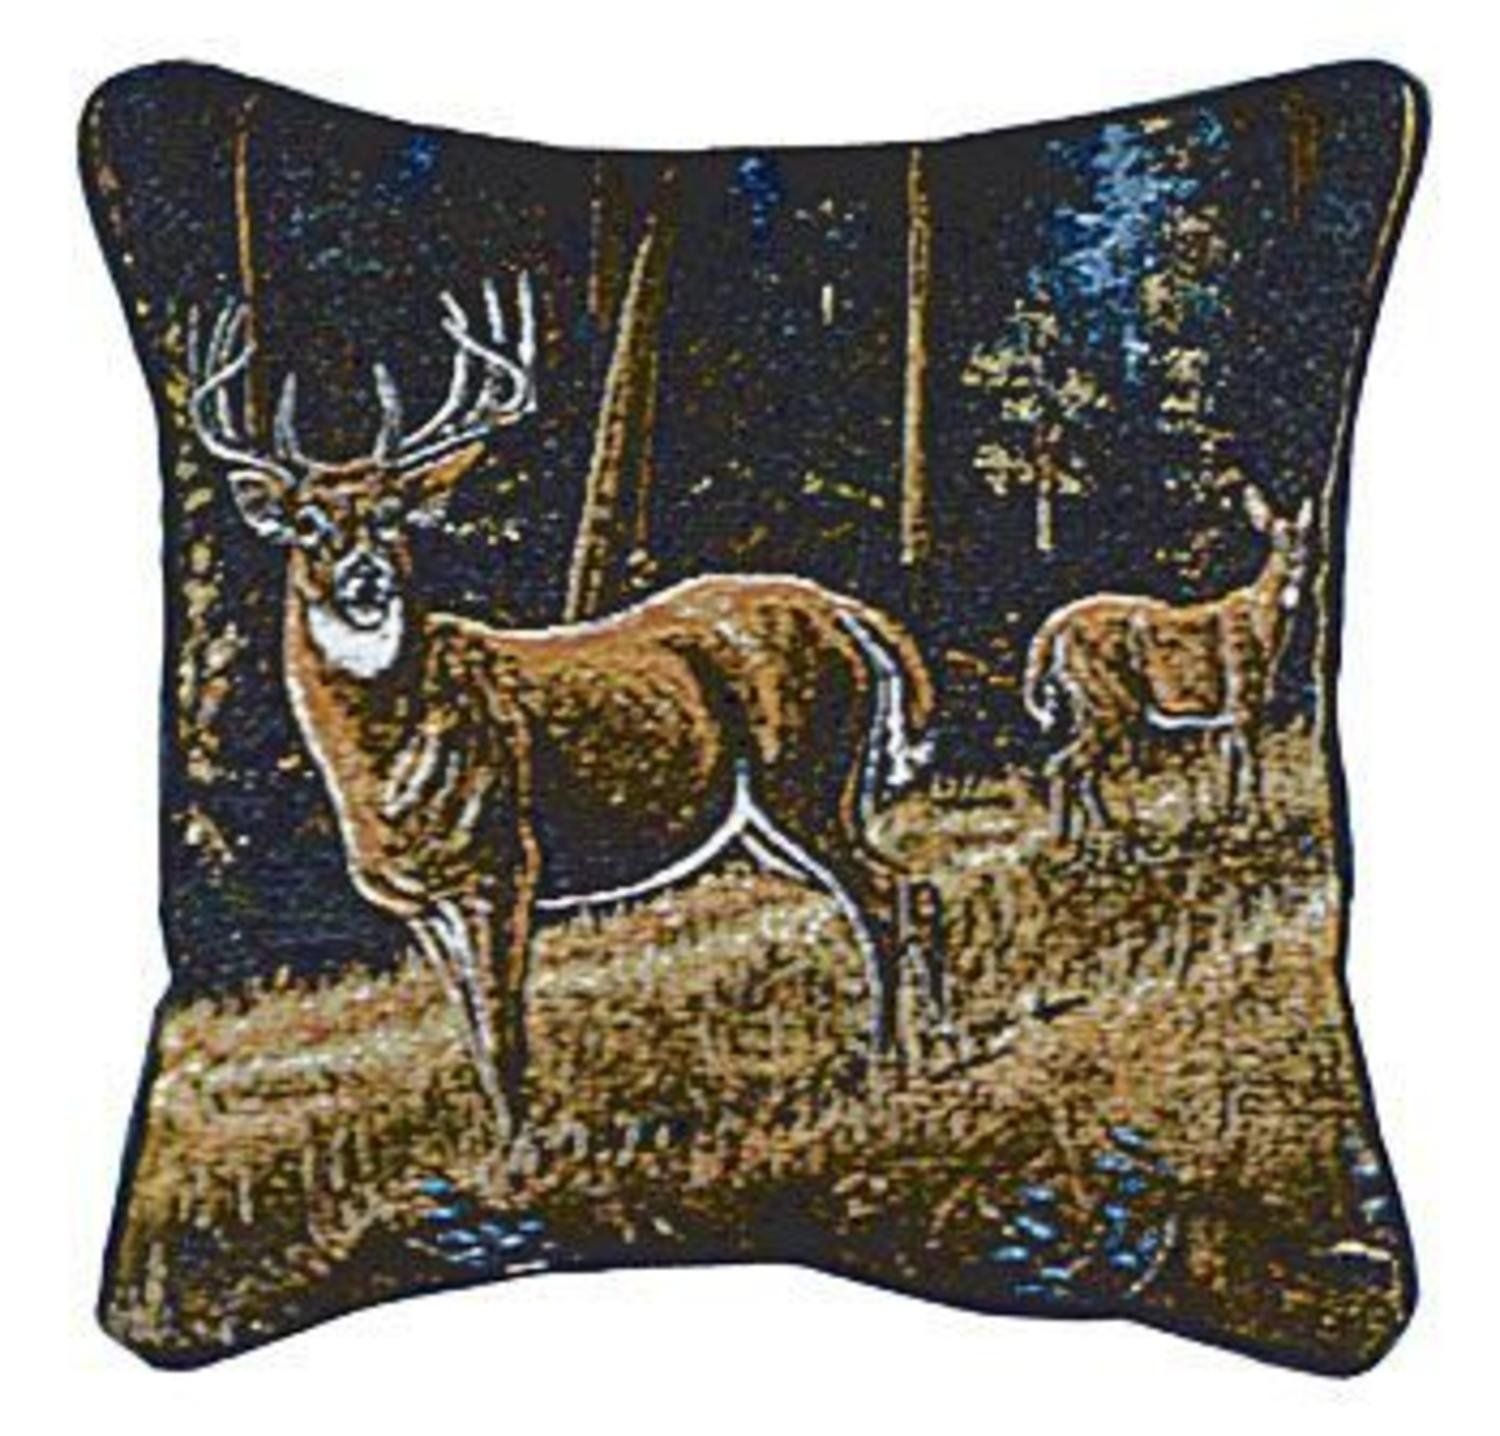 hide mina product throw inch overstock print deer brown and today victory nourison leather axis pillow home x pillows free by garden natural shipping